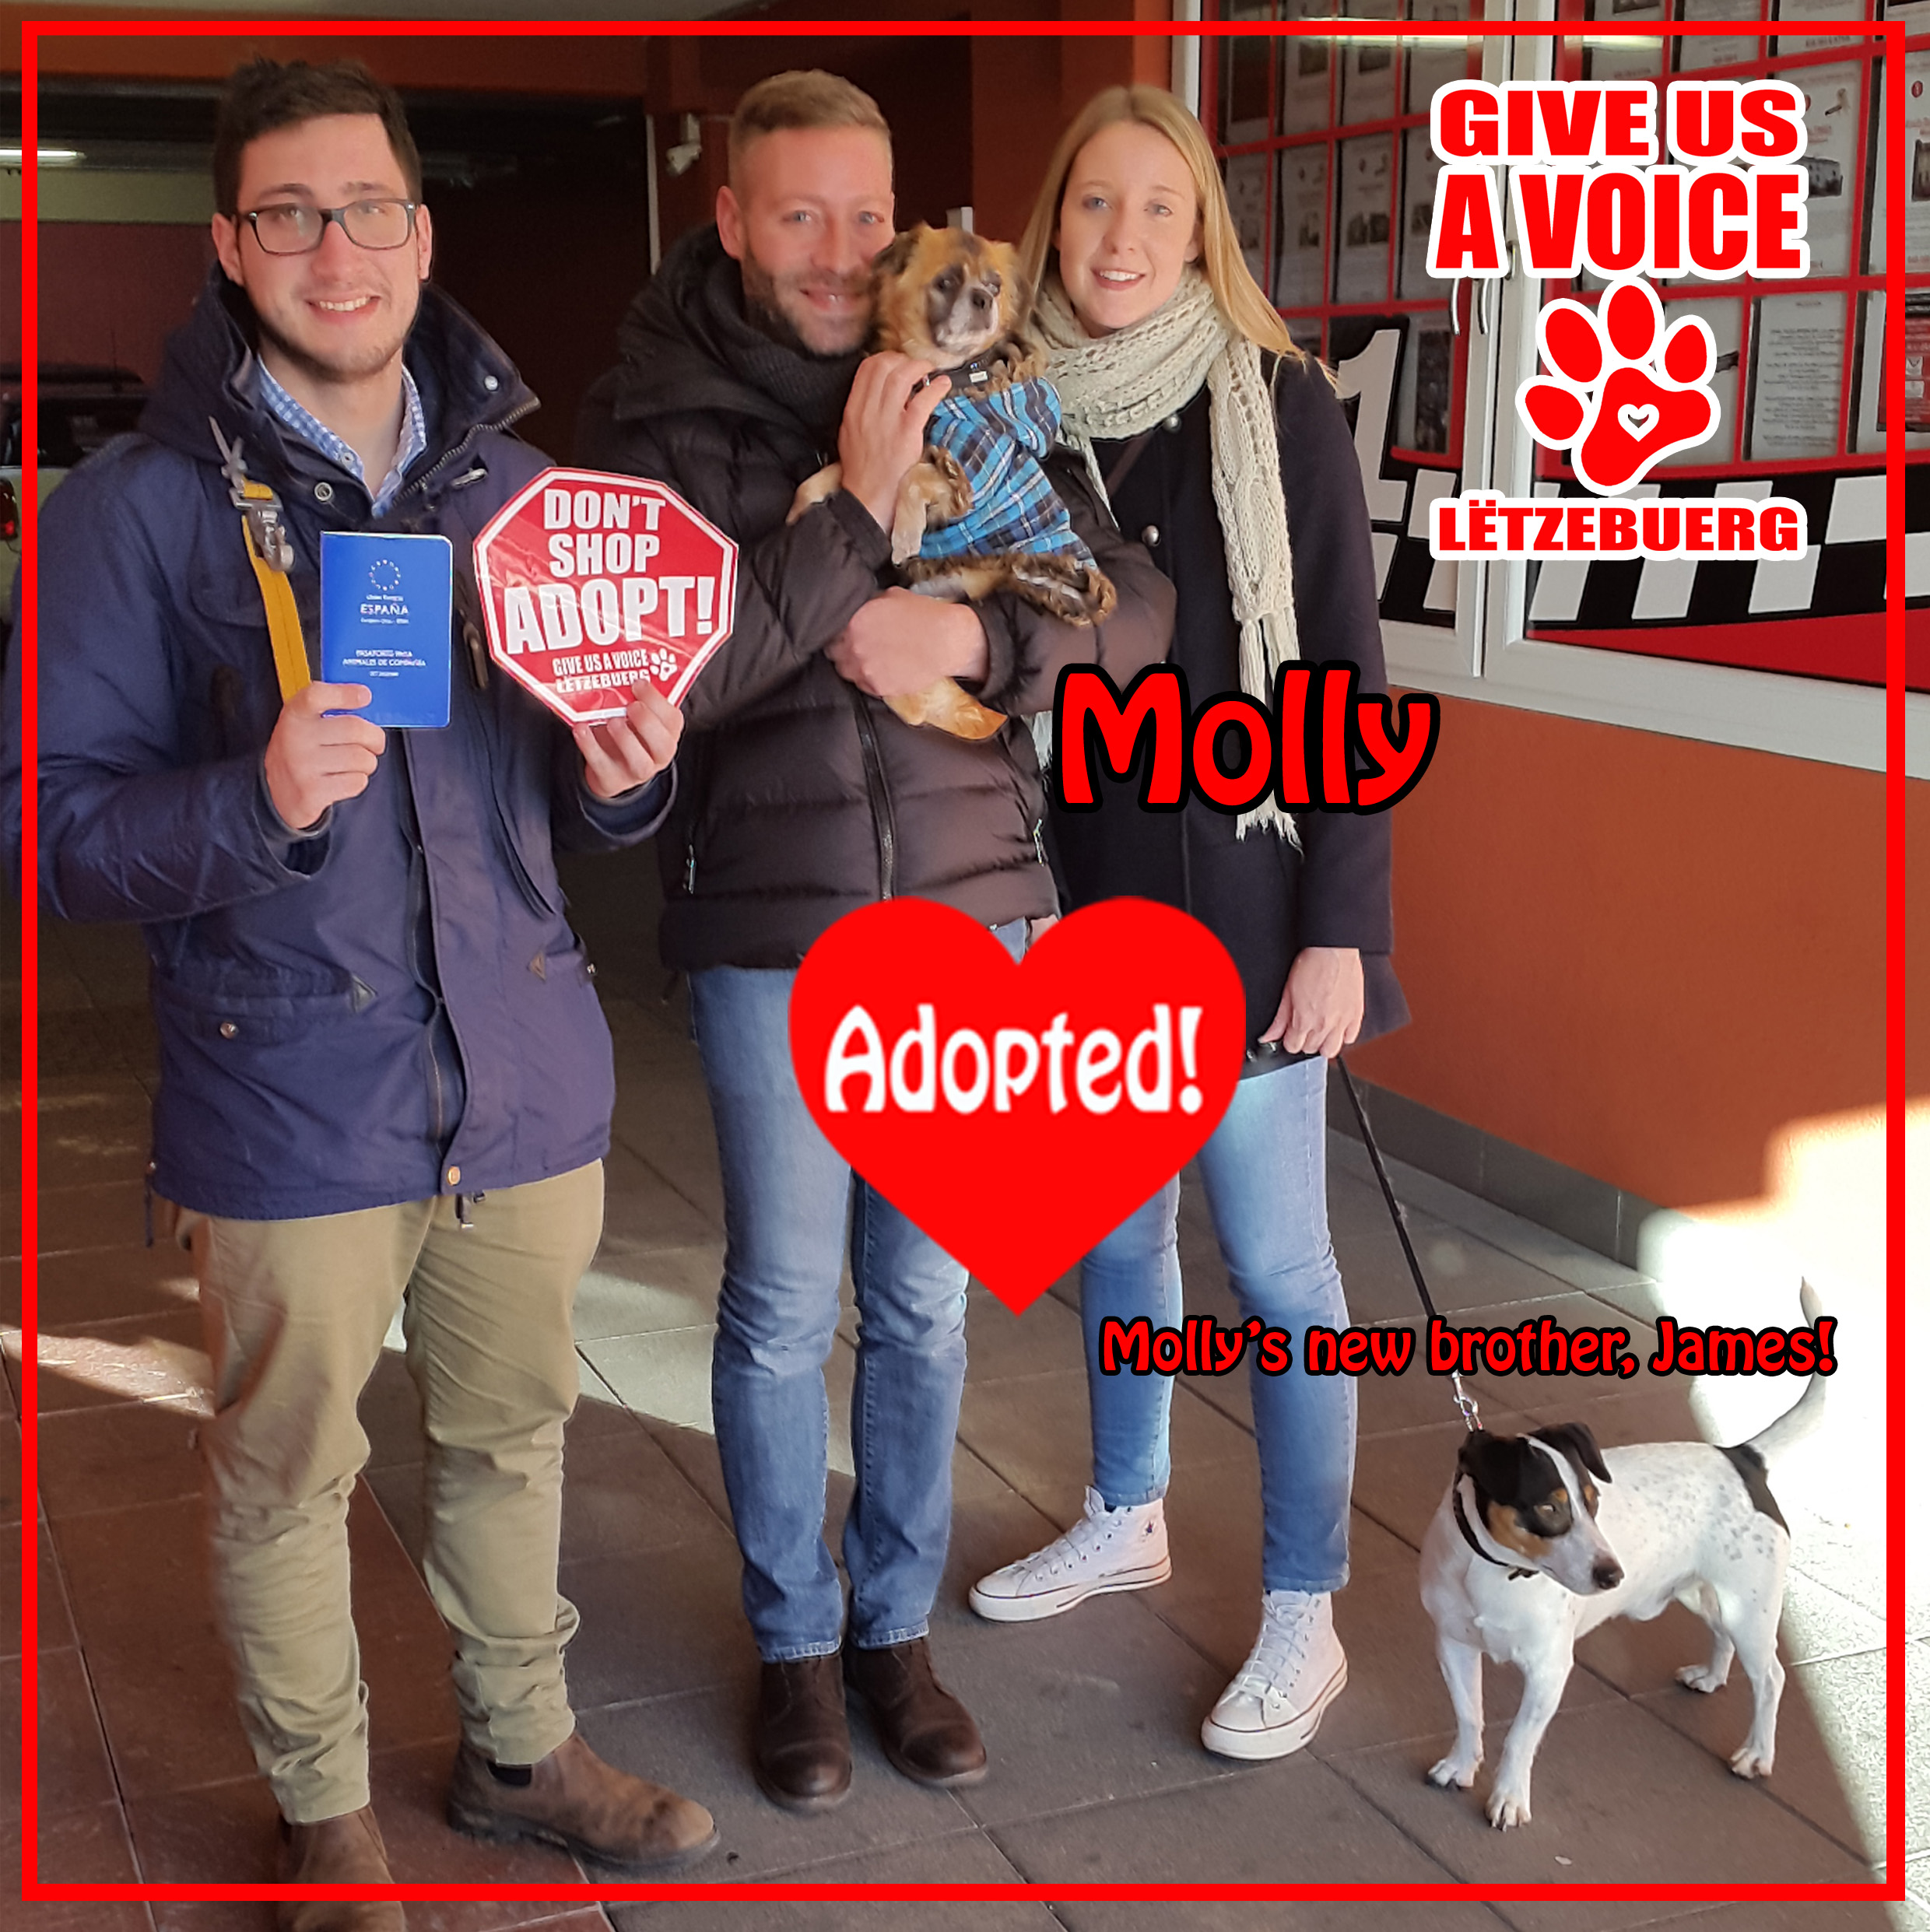 molly-adopted-copy